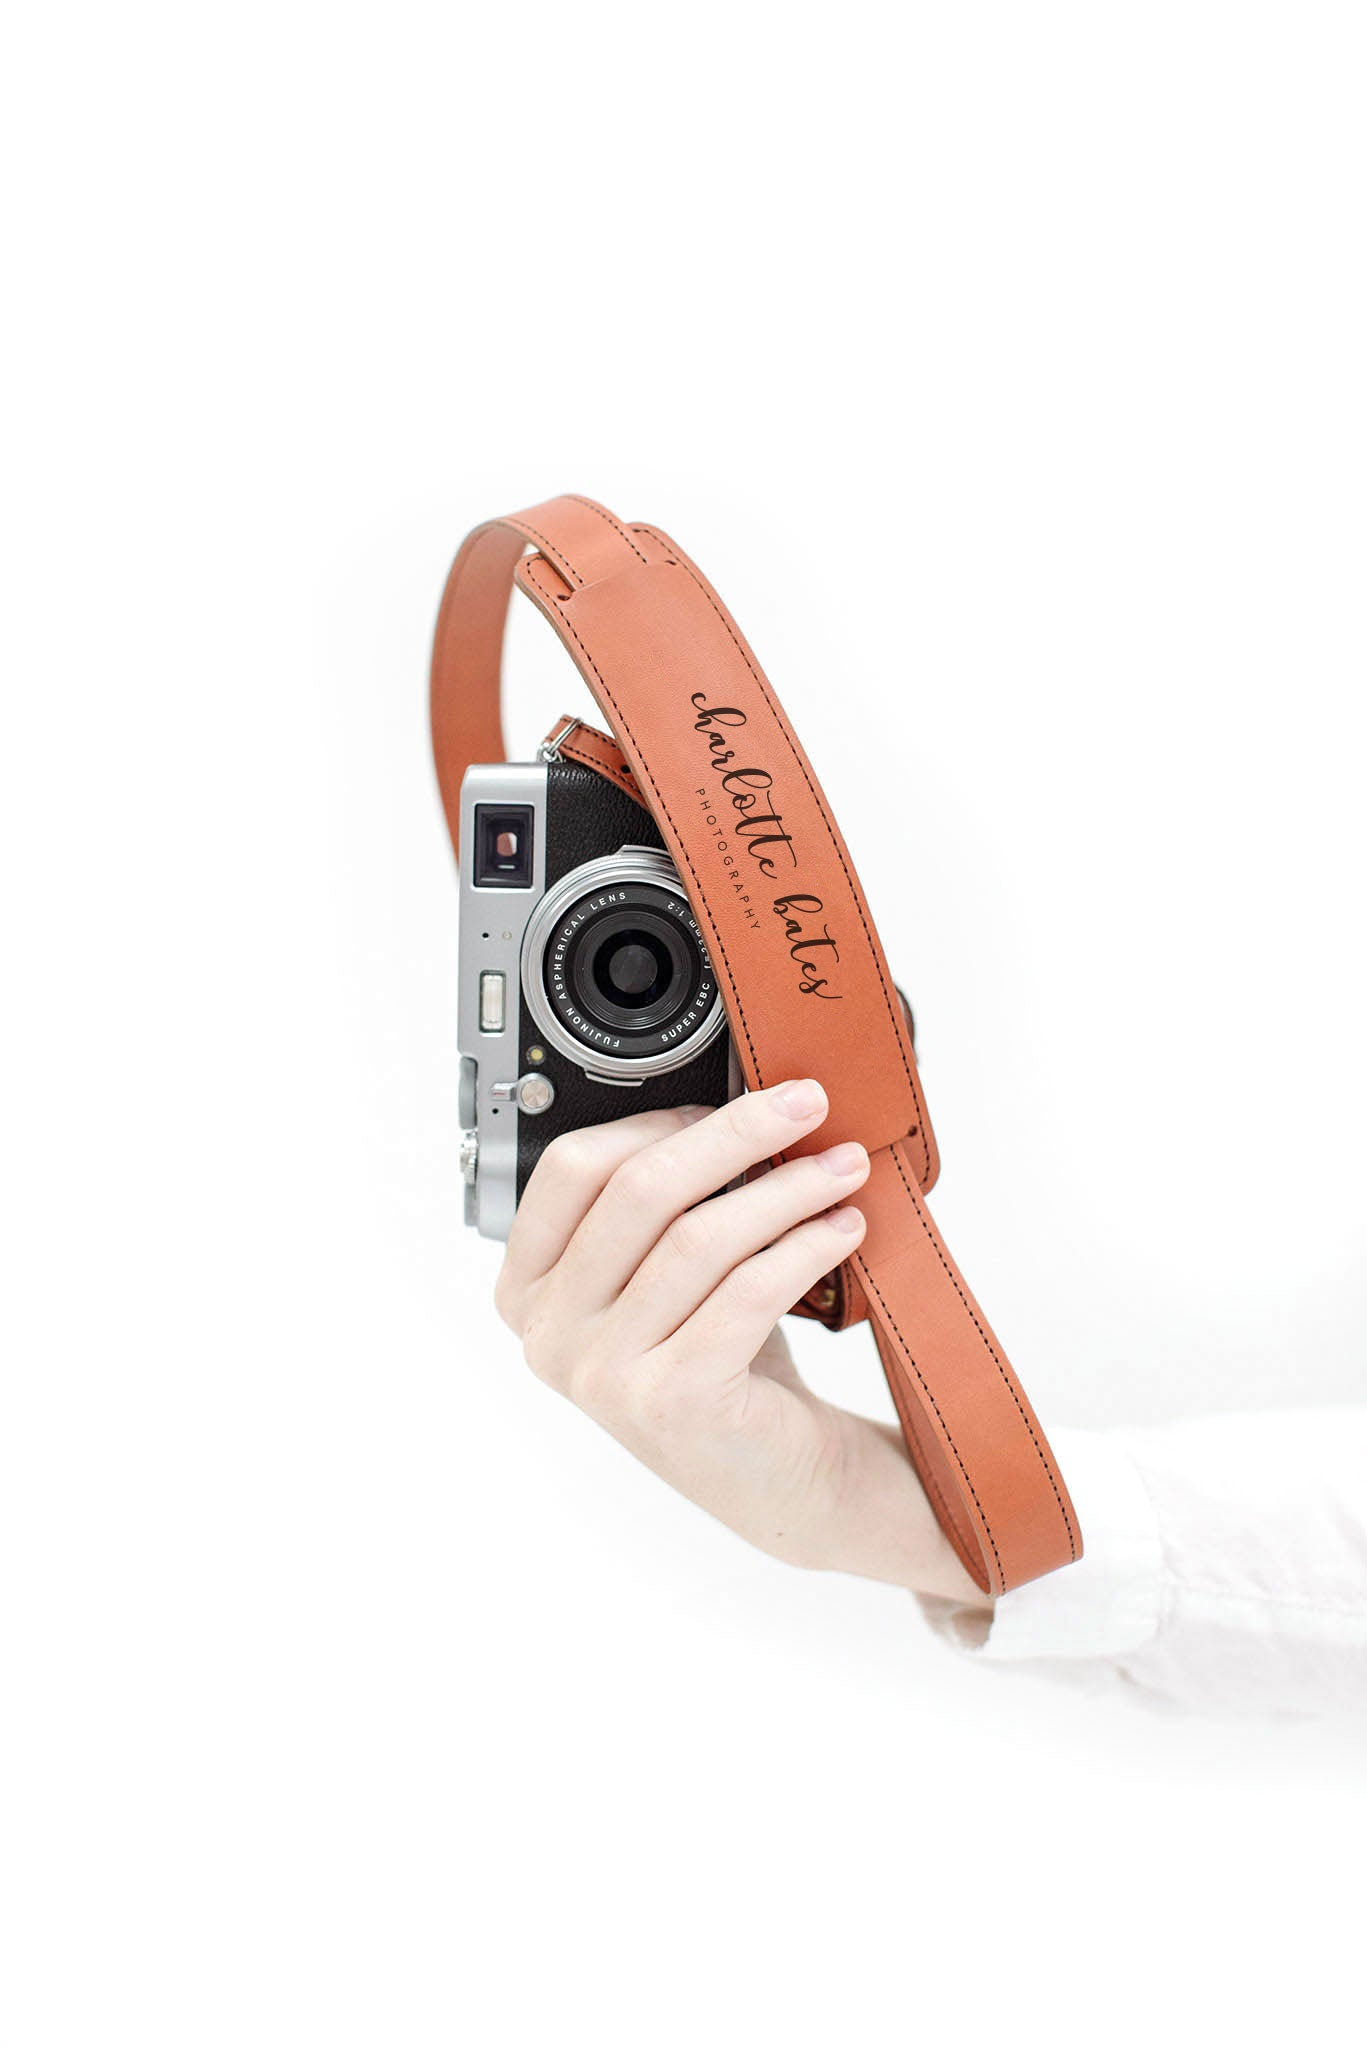 FOTO | The Skinny Cognac - a cognac brown genuine all-leather skinny camera strap that can be personalized with a monogram or business logo, making this leather camera strap the perfect personalized gift.